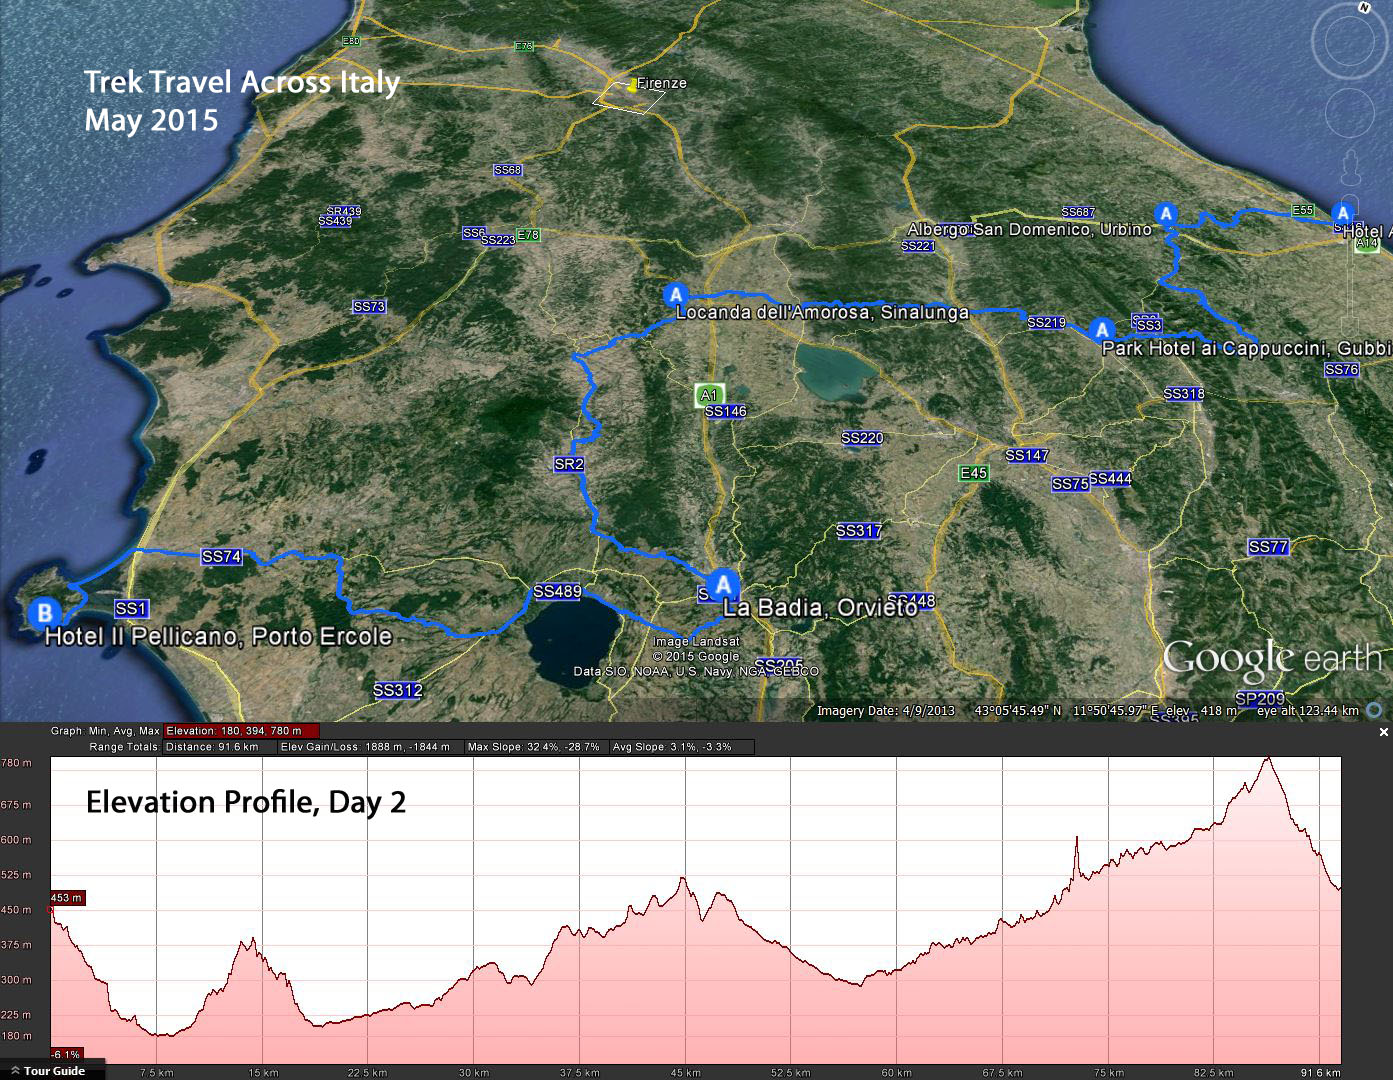 Click image for larger version  Name:Trek Cross Italy Days 1-5 Text.jpg Views:51 Size:430.2 KB ID:242024